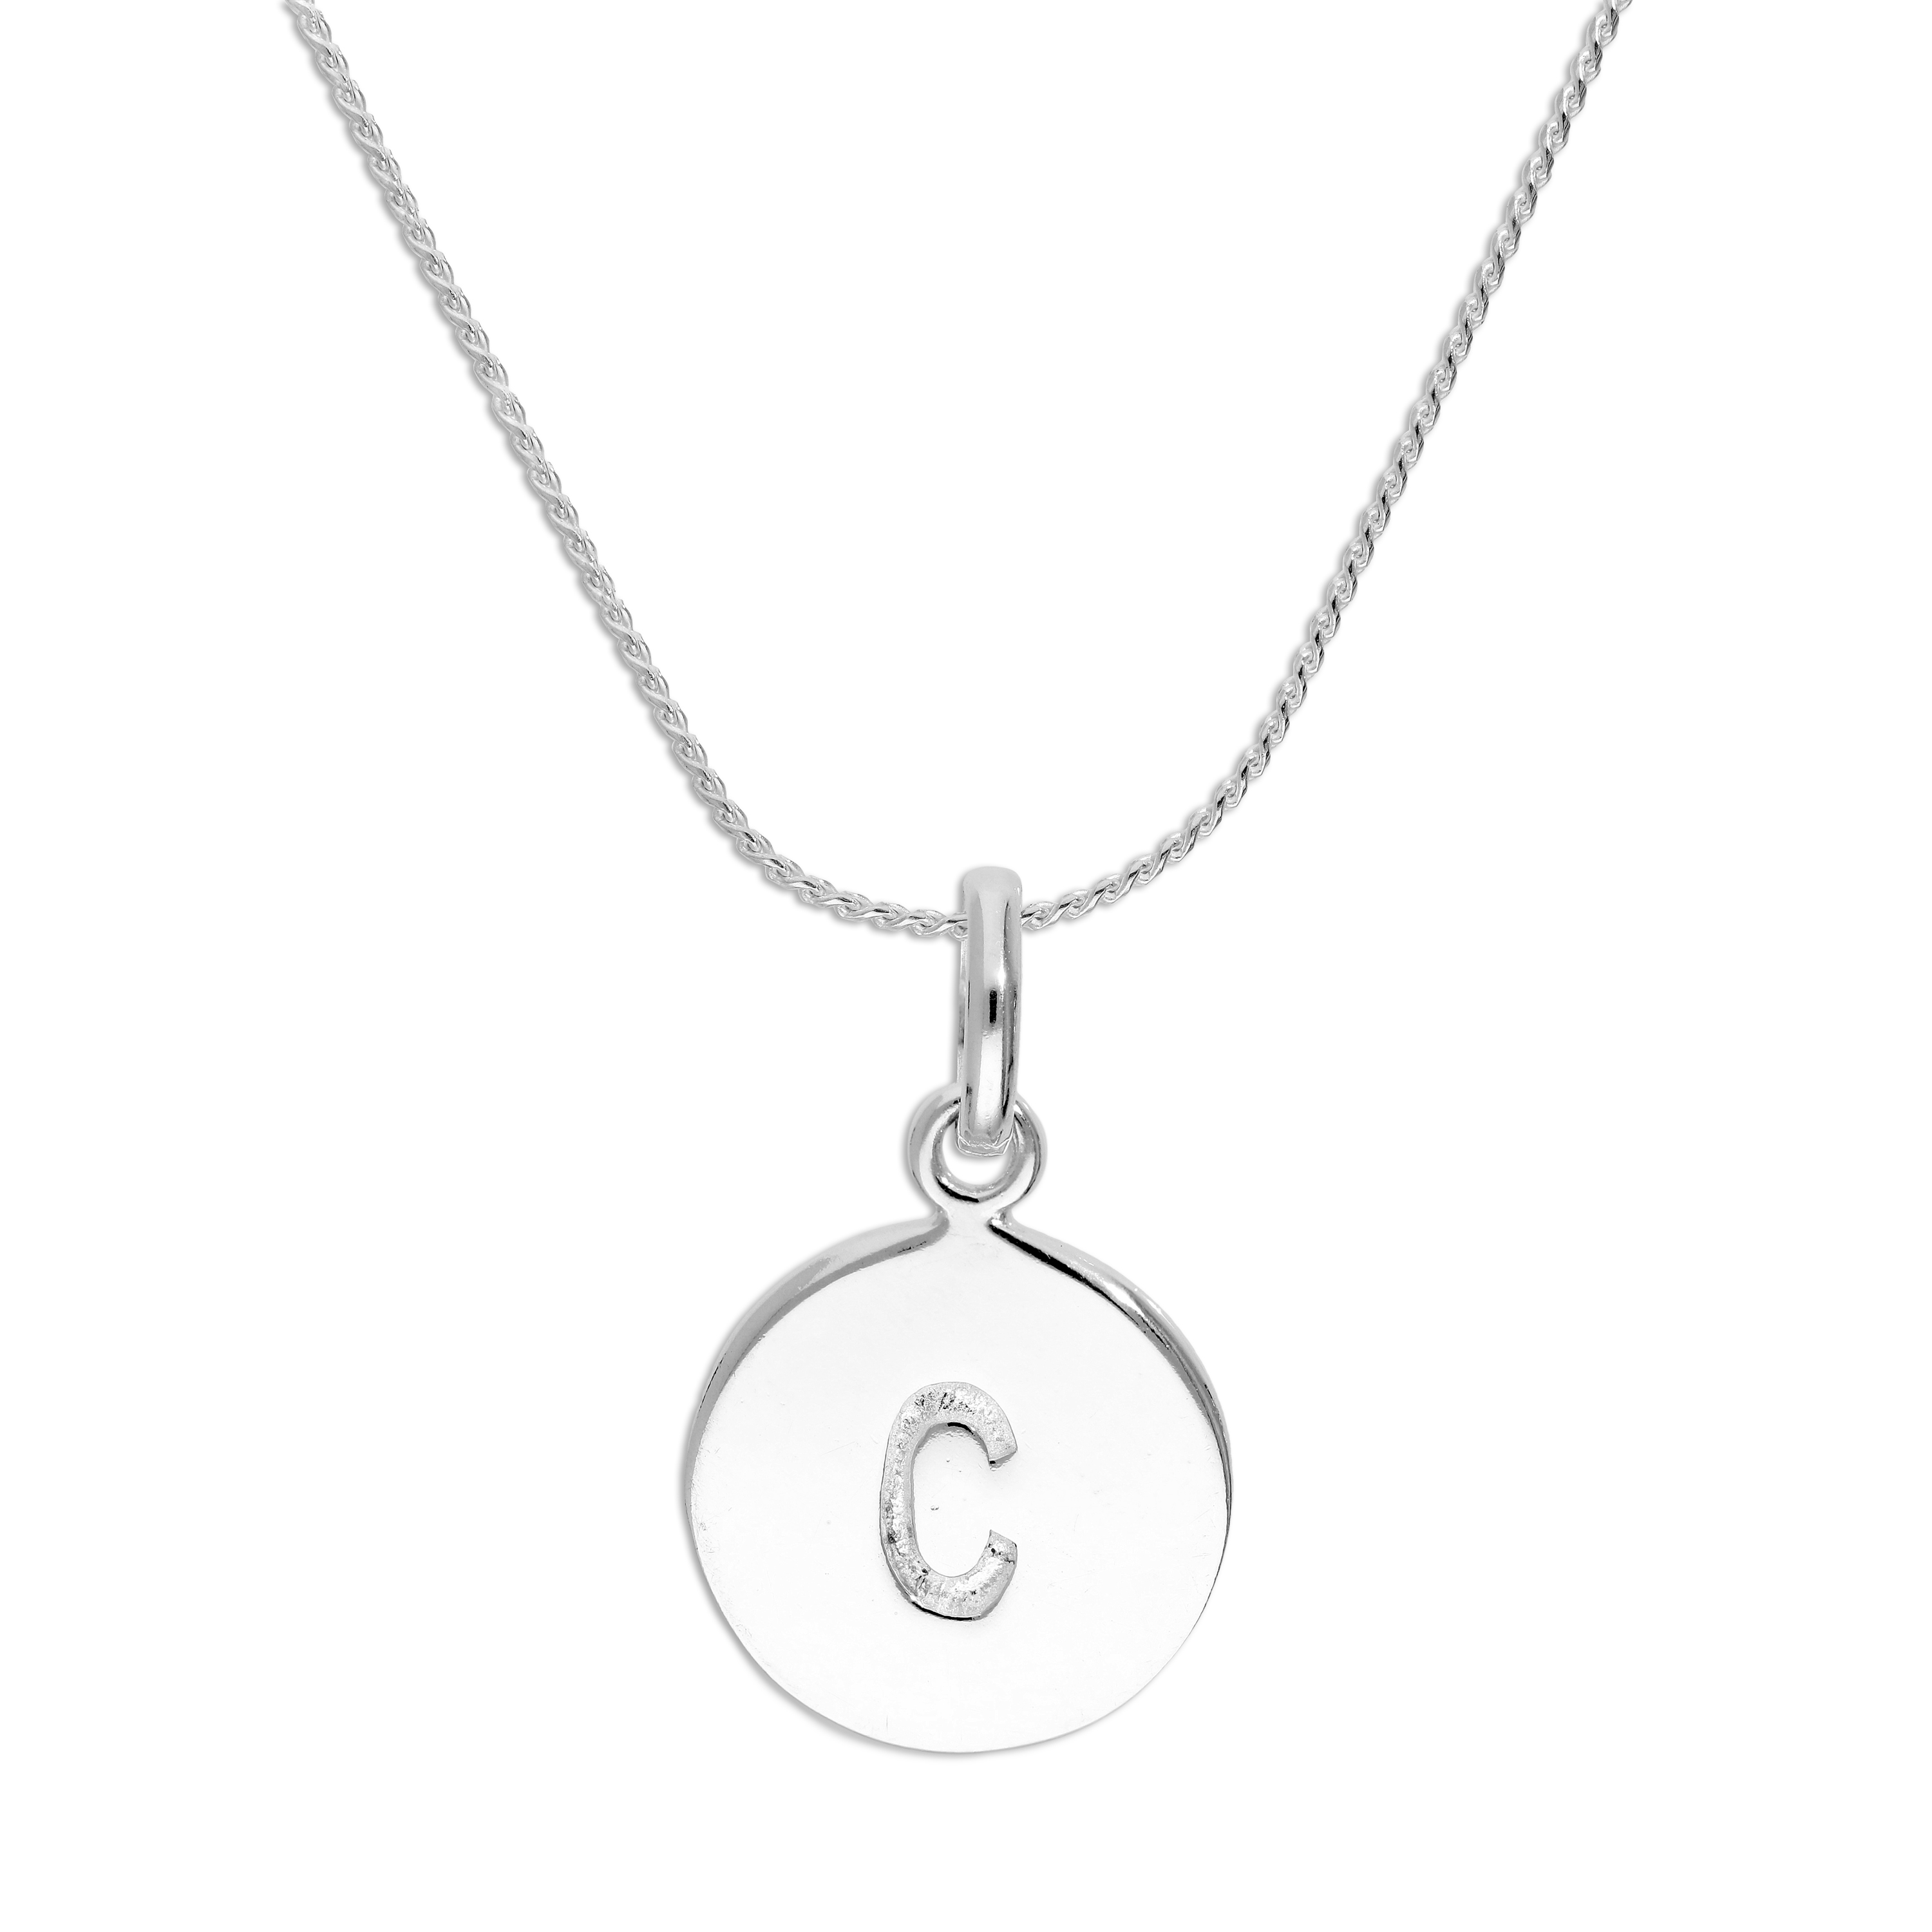 An image of Sterling Silver Initial Letter C Necklace 20 Inches Blue